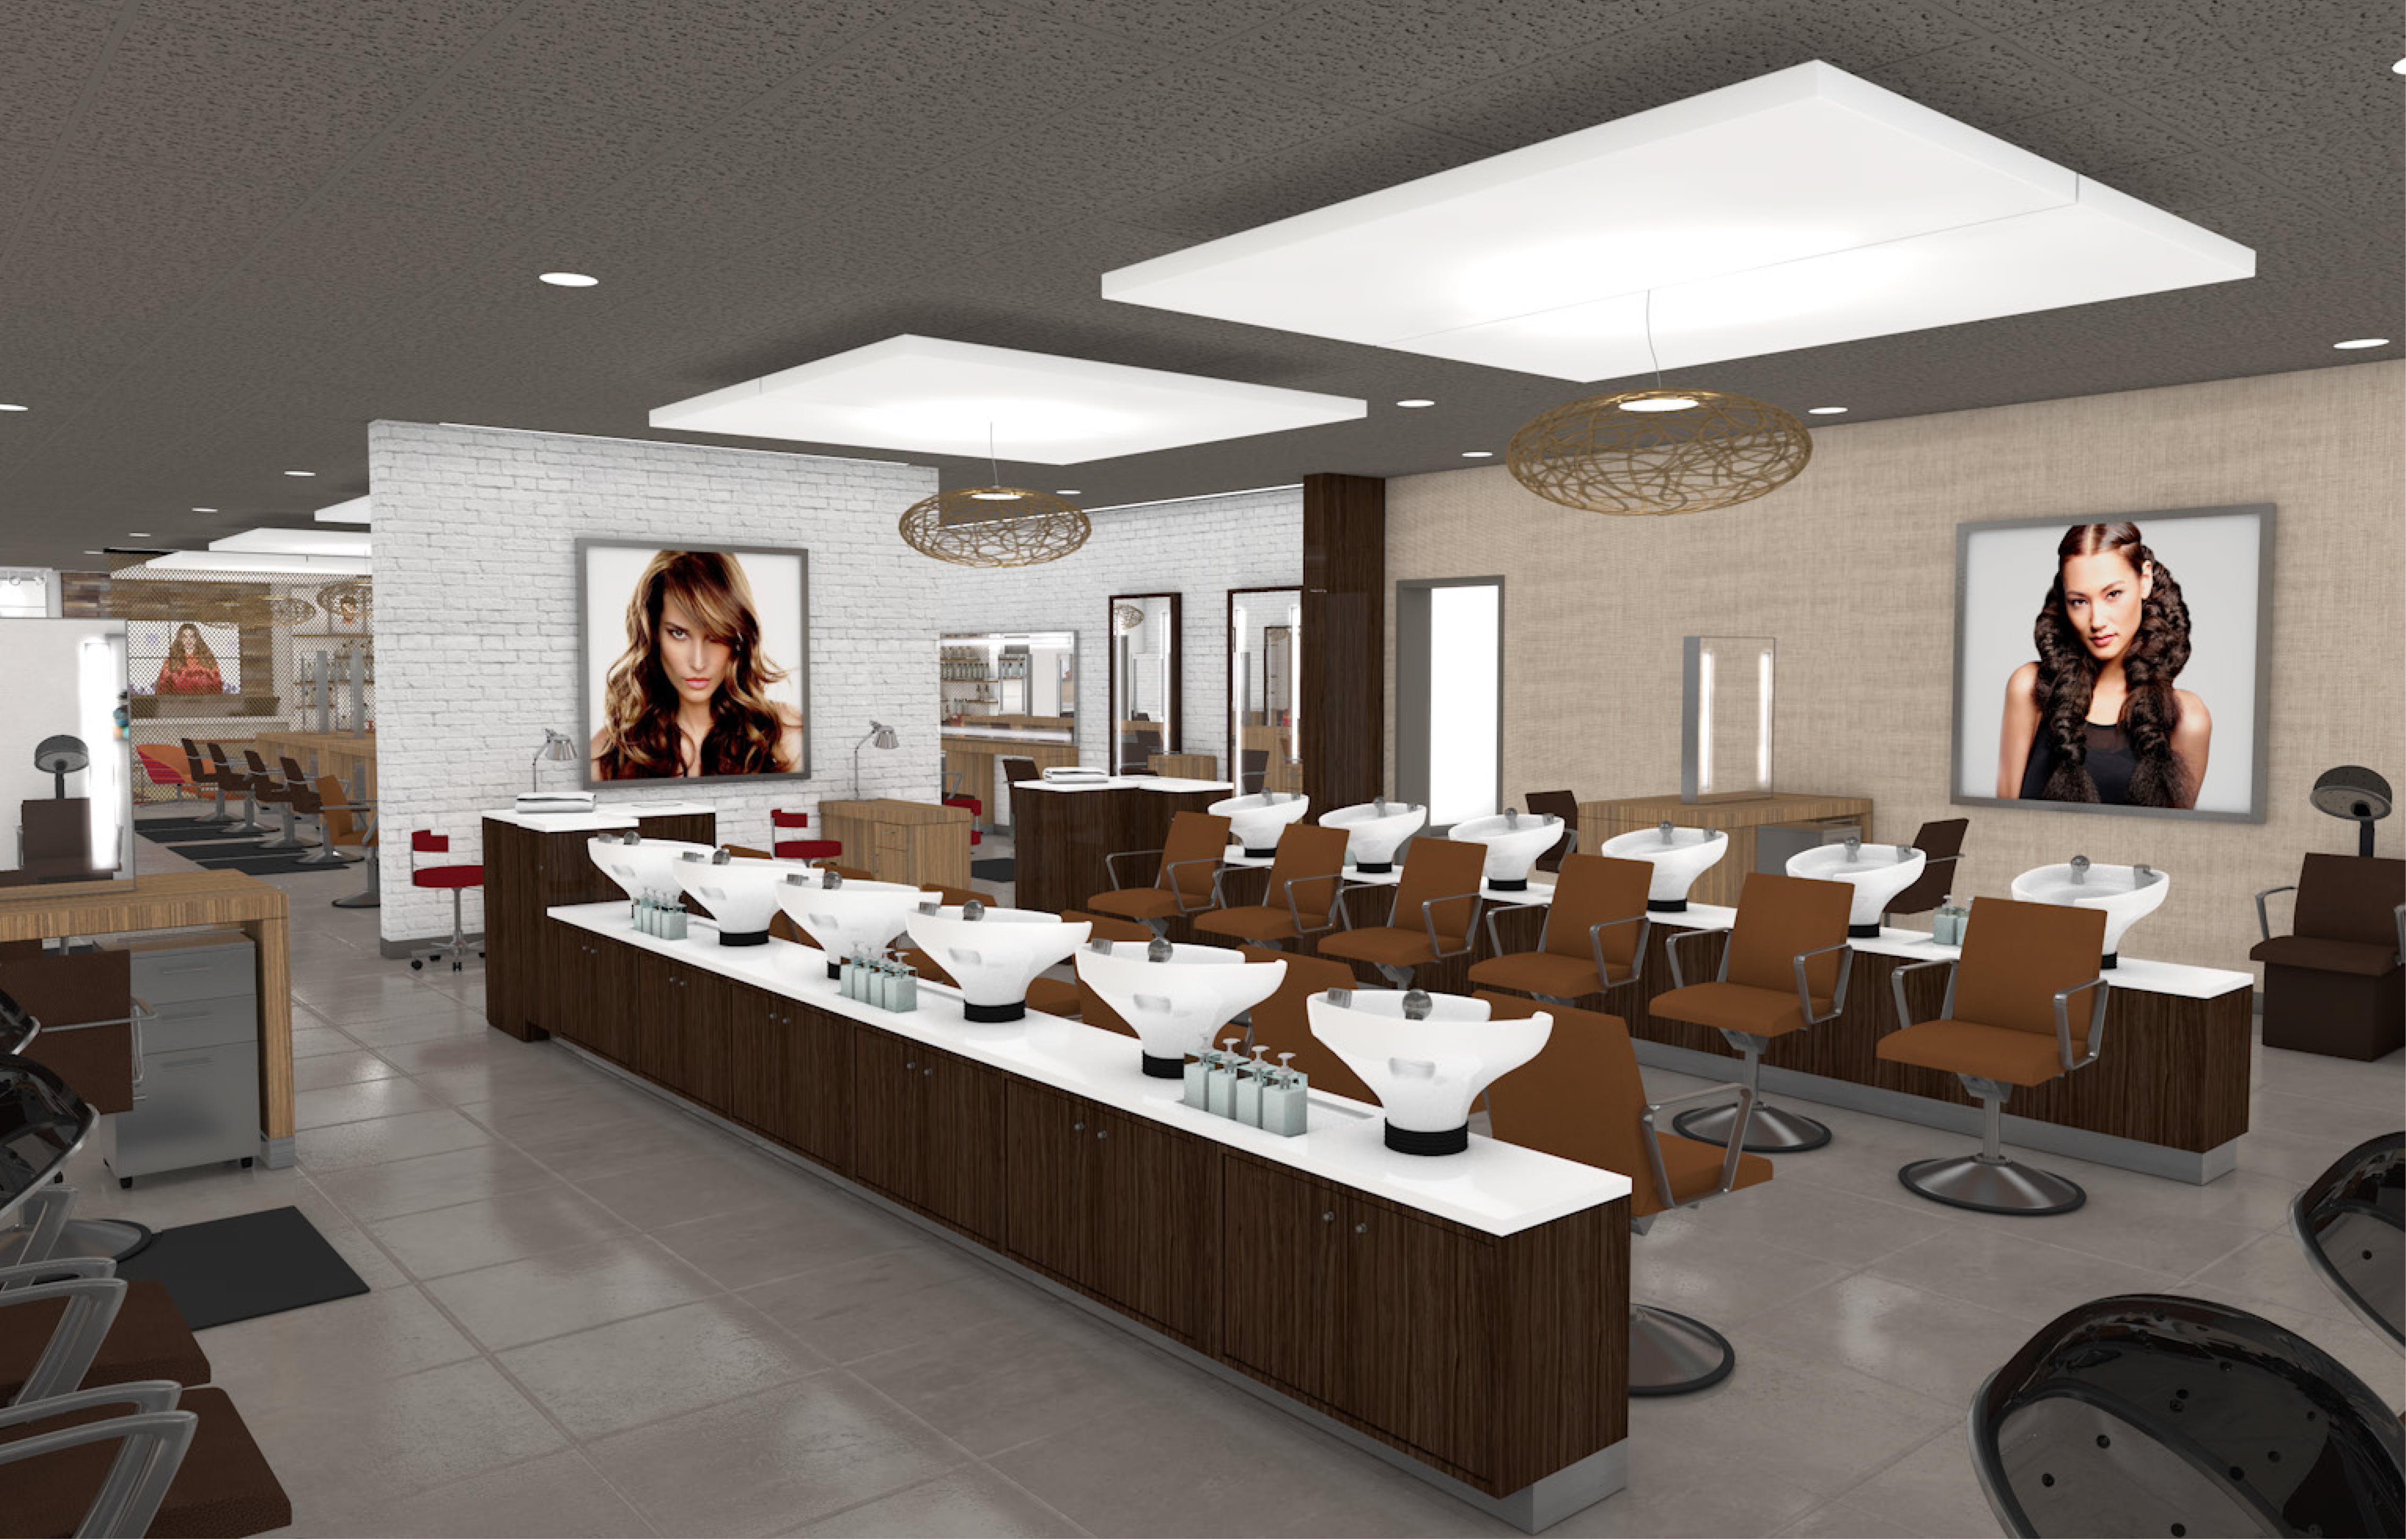 Our customers already shop JCPenney for beauty  fashion apparel  shoes and  accessories  As more women experience the services provided at The Salon by. JCPenney Announces New Salon Concept and Partnership with InStyle